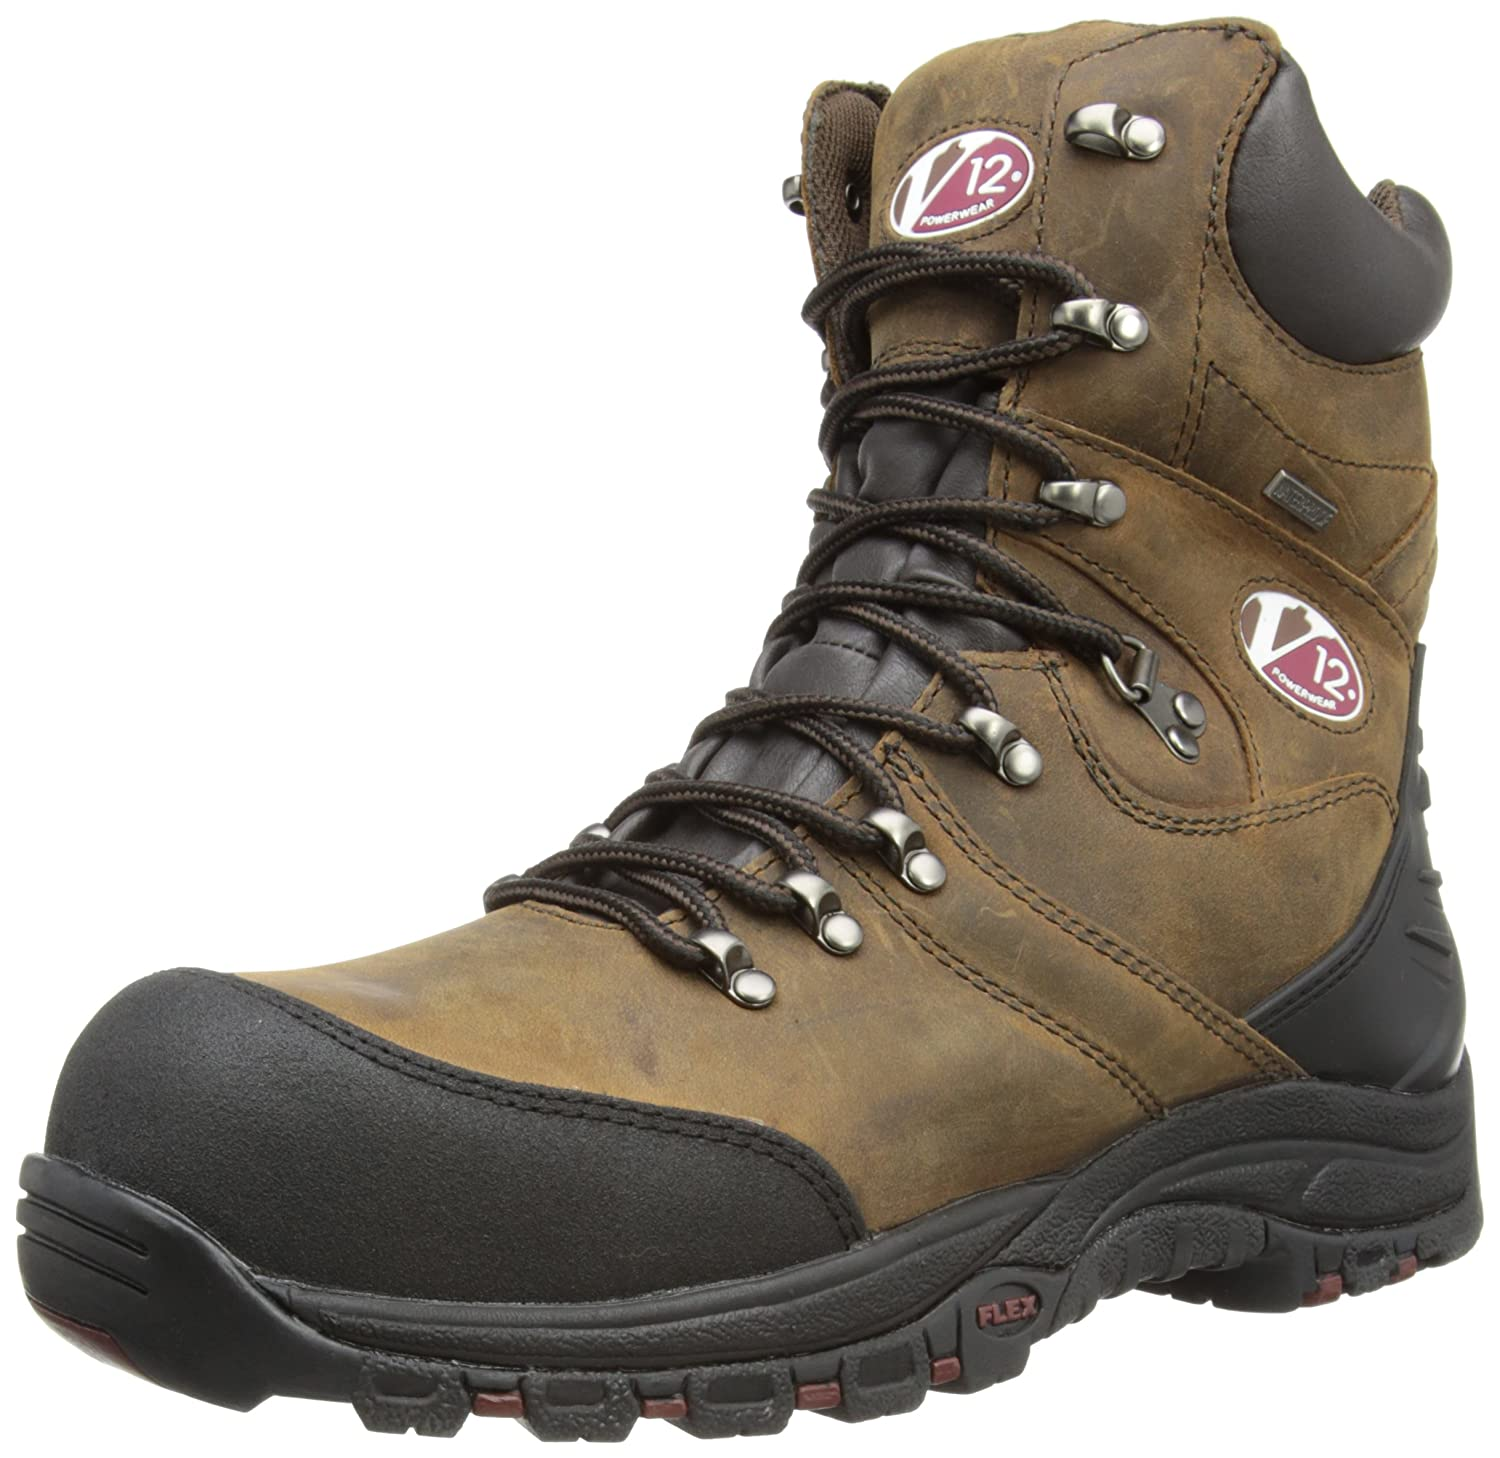 481824f33ff V12 Rocky, Zip-Sided Waterproof Safety Hiker, 05 UK 38 EU, Brown